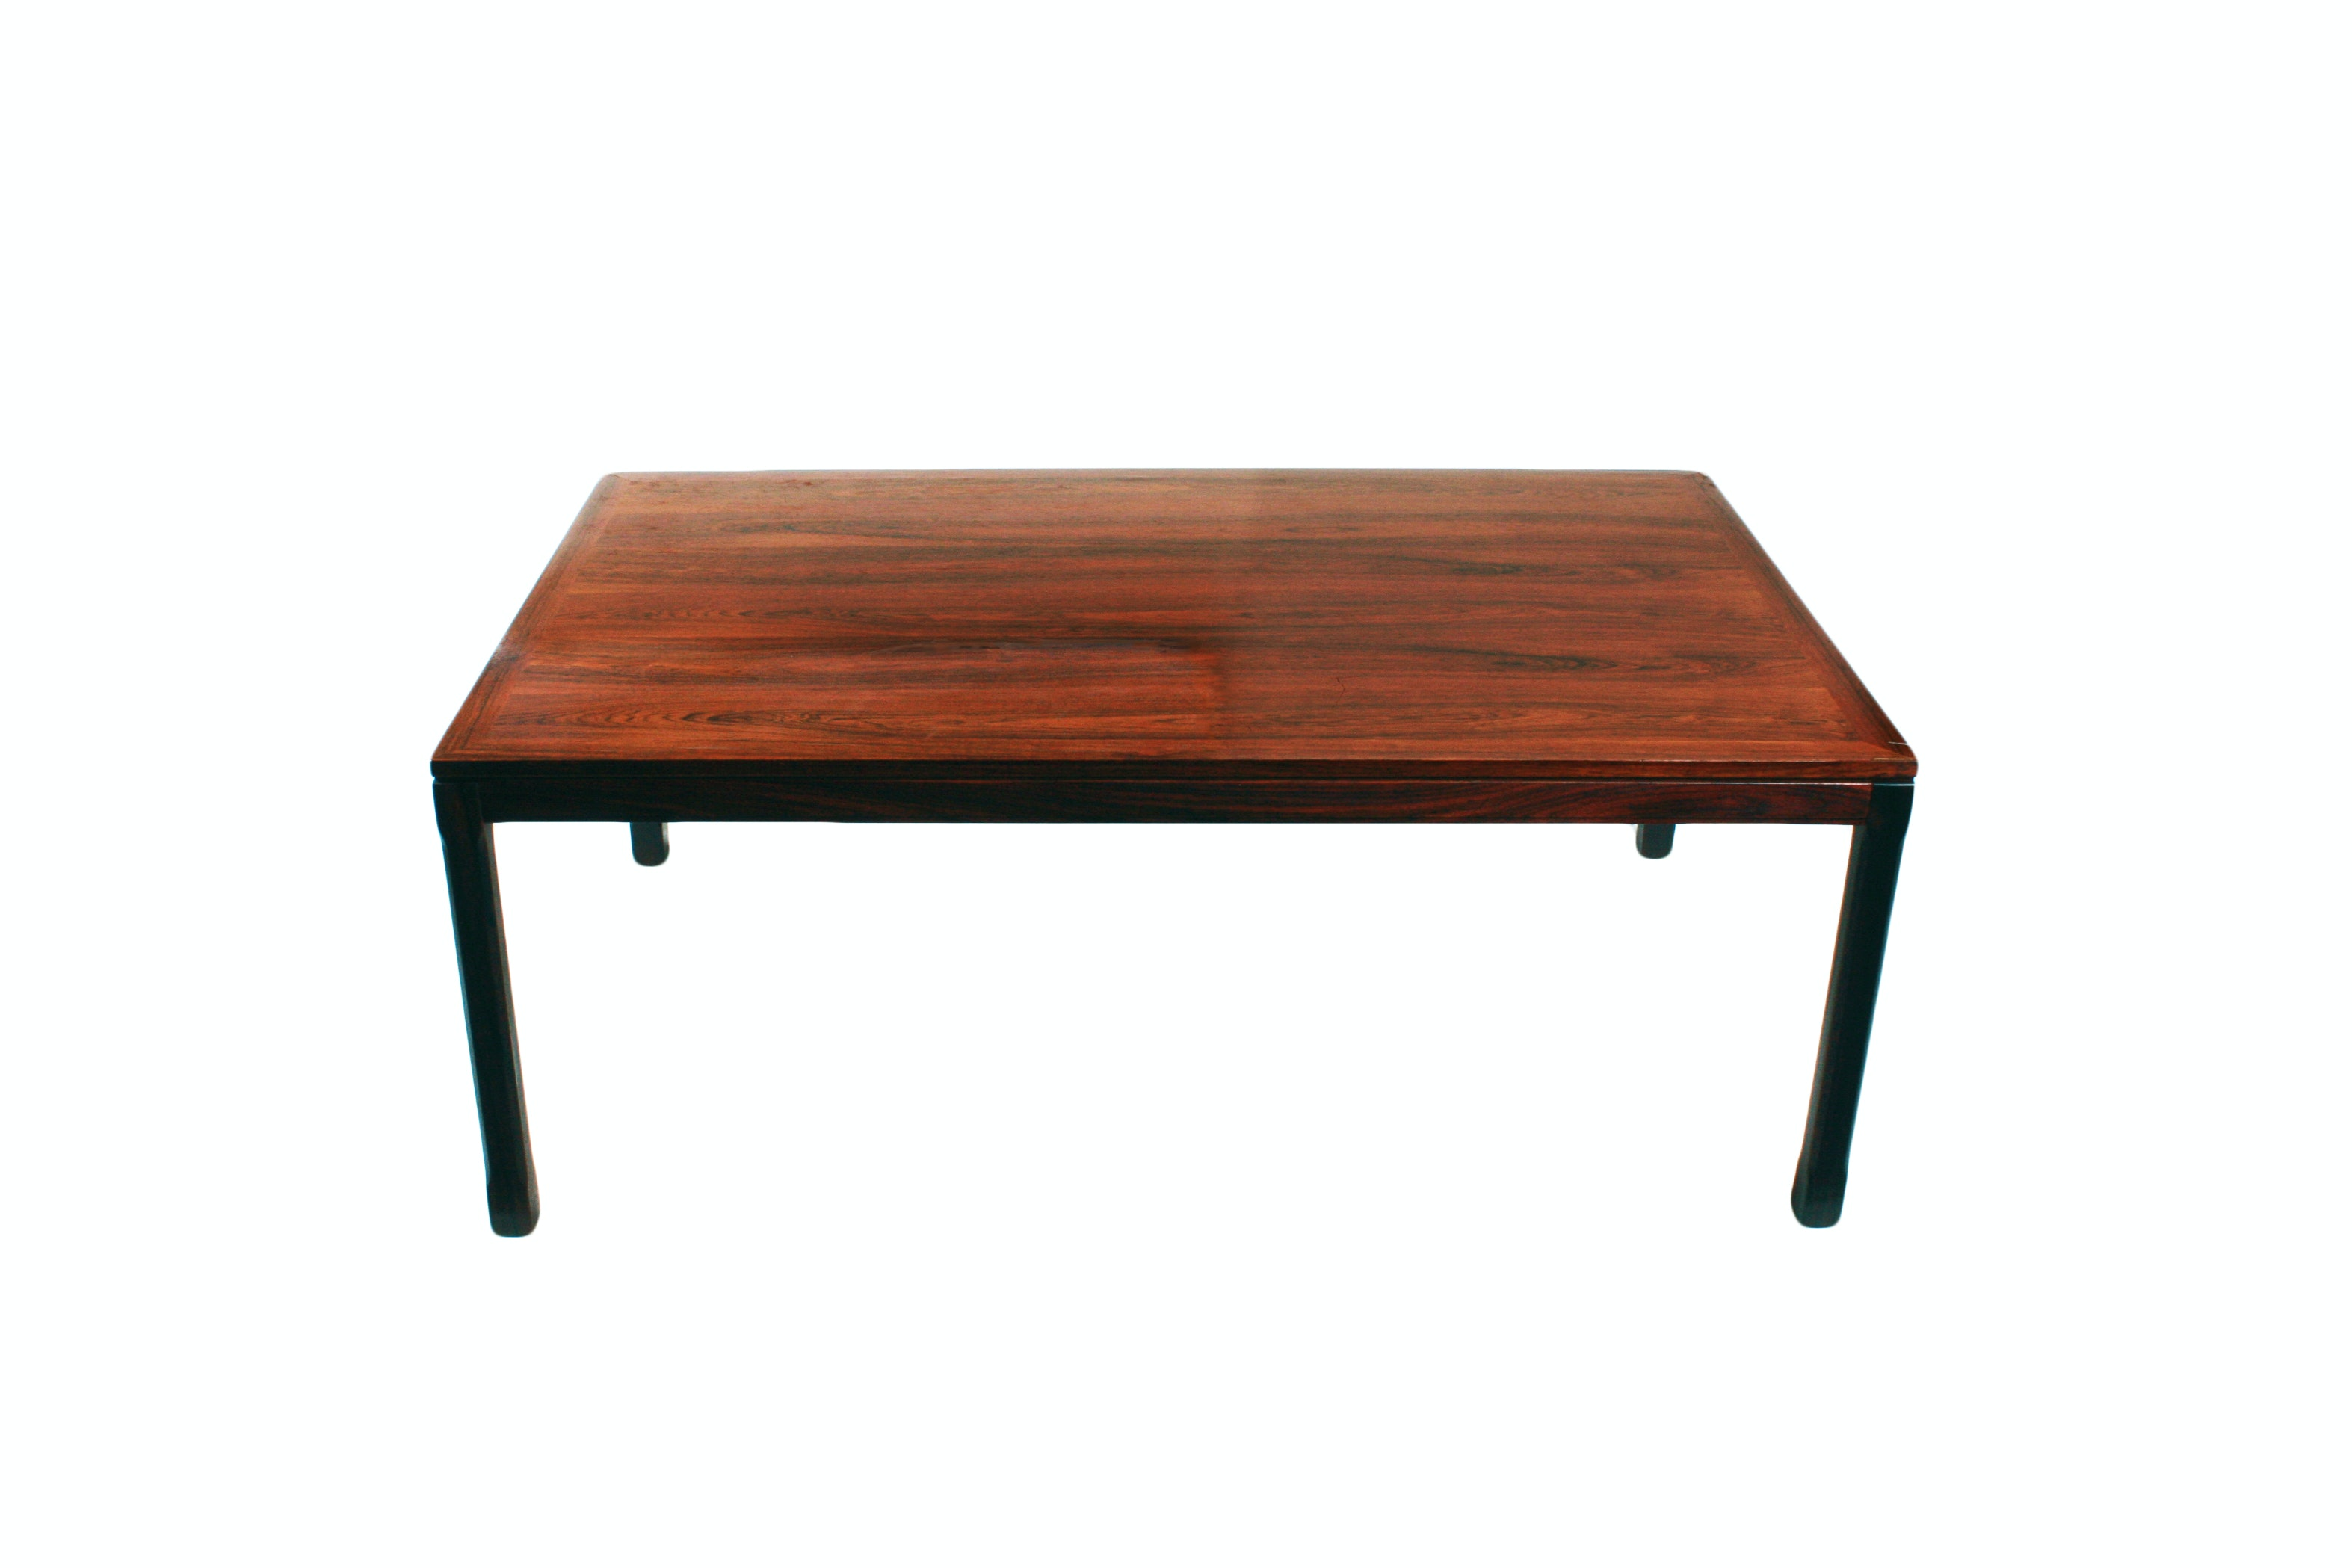 Scandinavian Modern Coffee Table by Tingströms